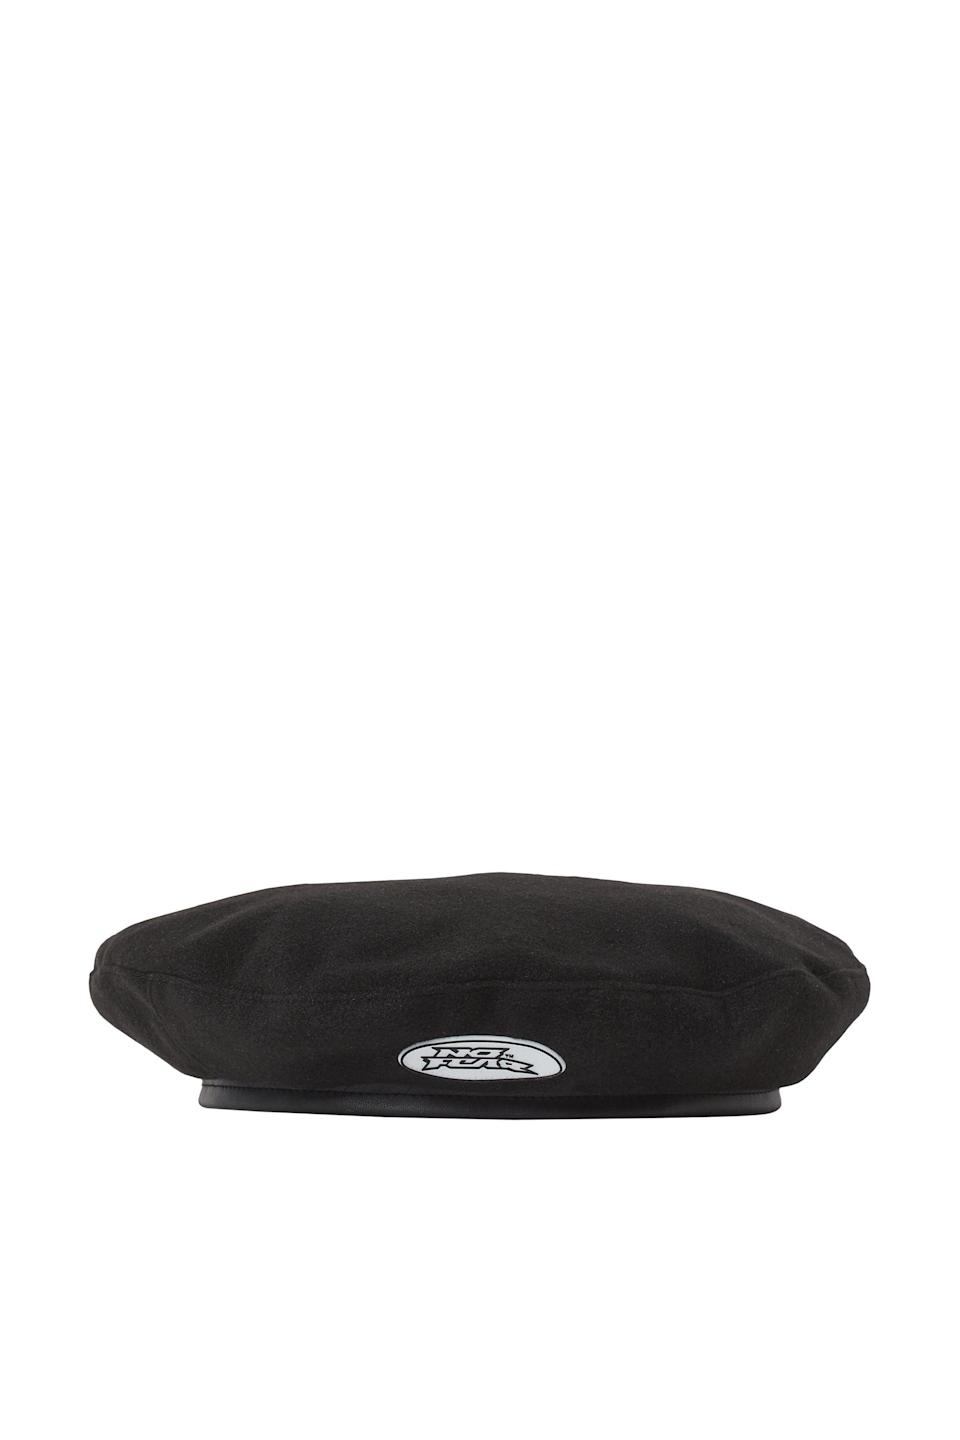 <p>Take this as a sign. You can in fact pull off this <span>No Fear x H&amp;M Beret</span> ($13), and it'll be so fun to try it out.</p>